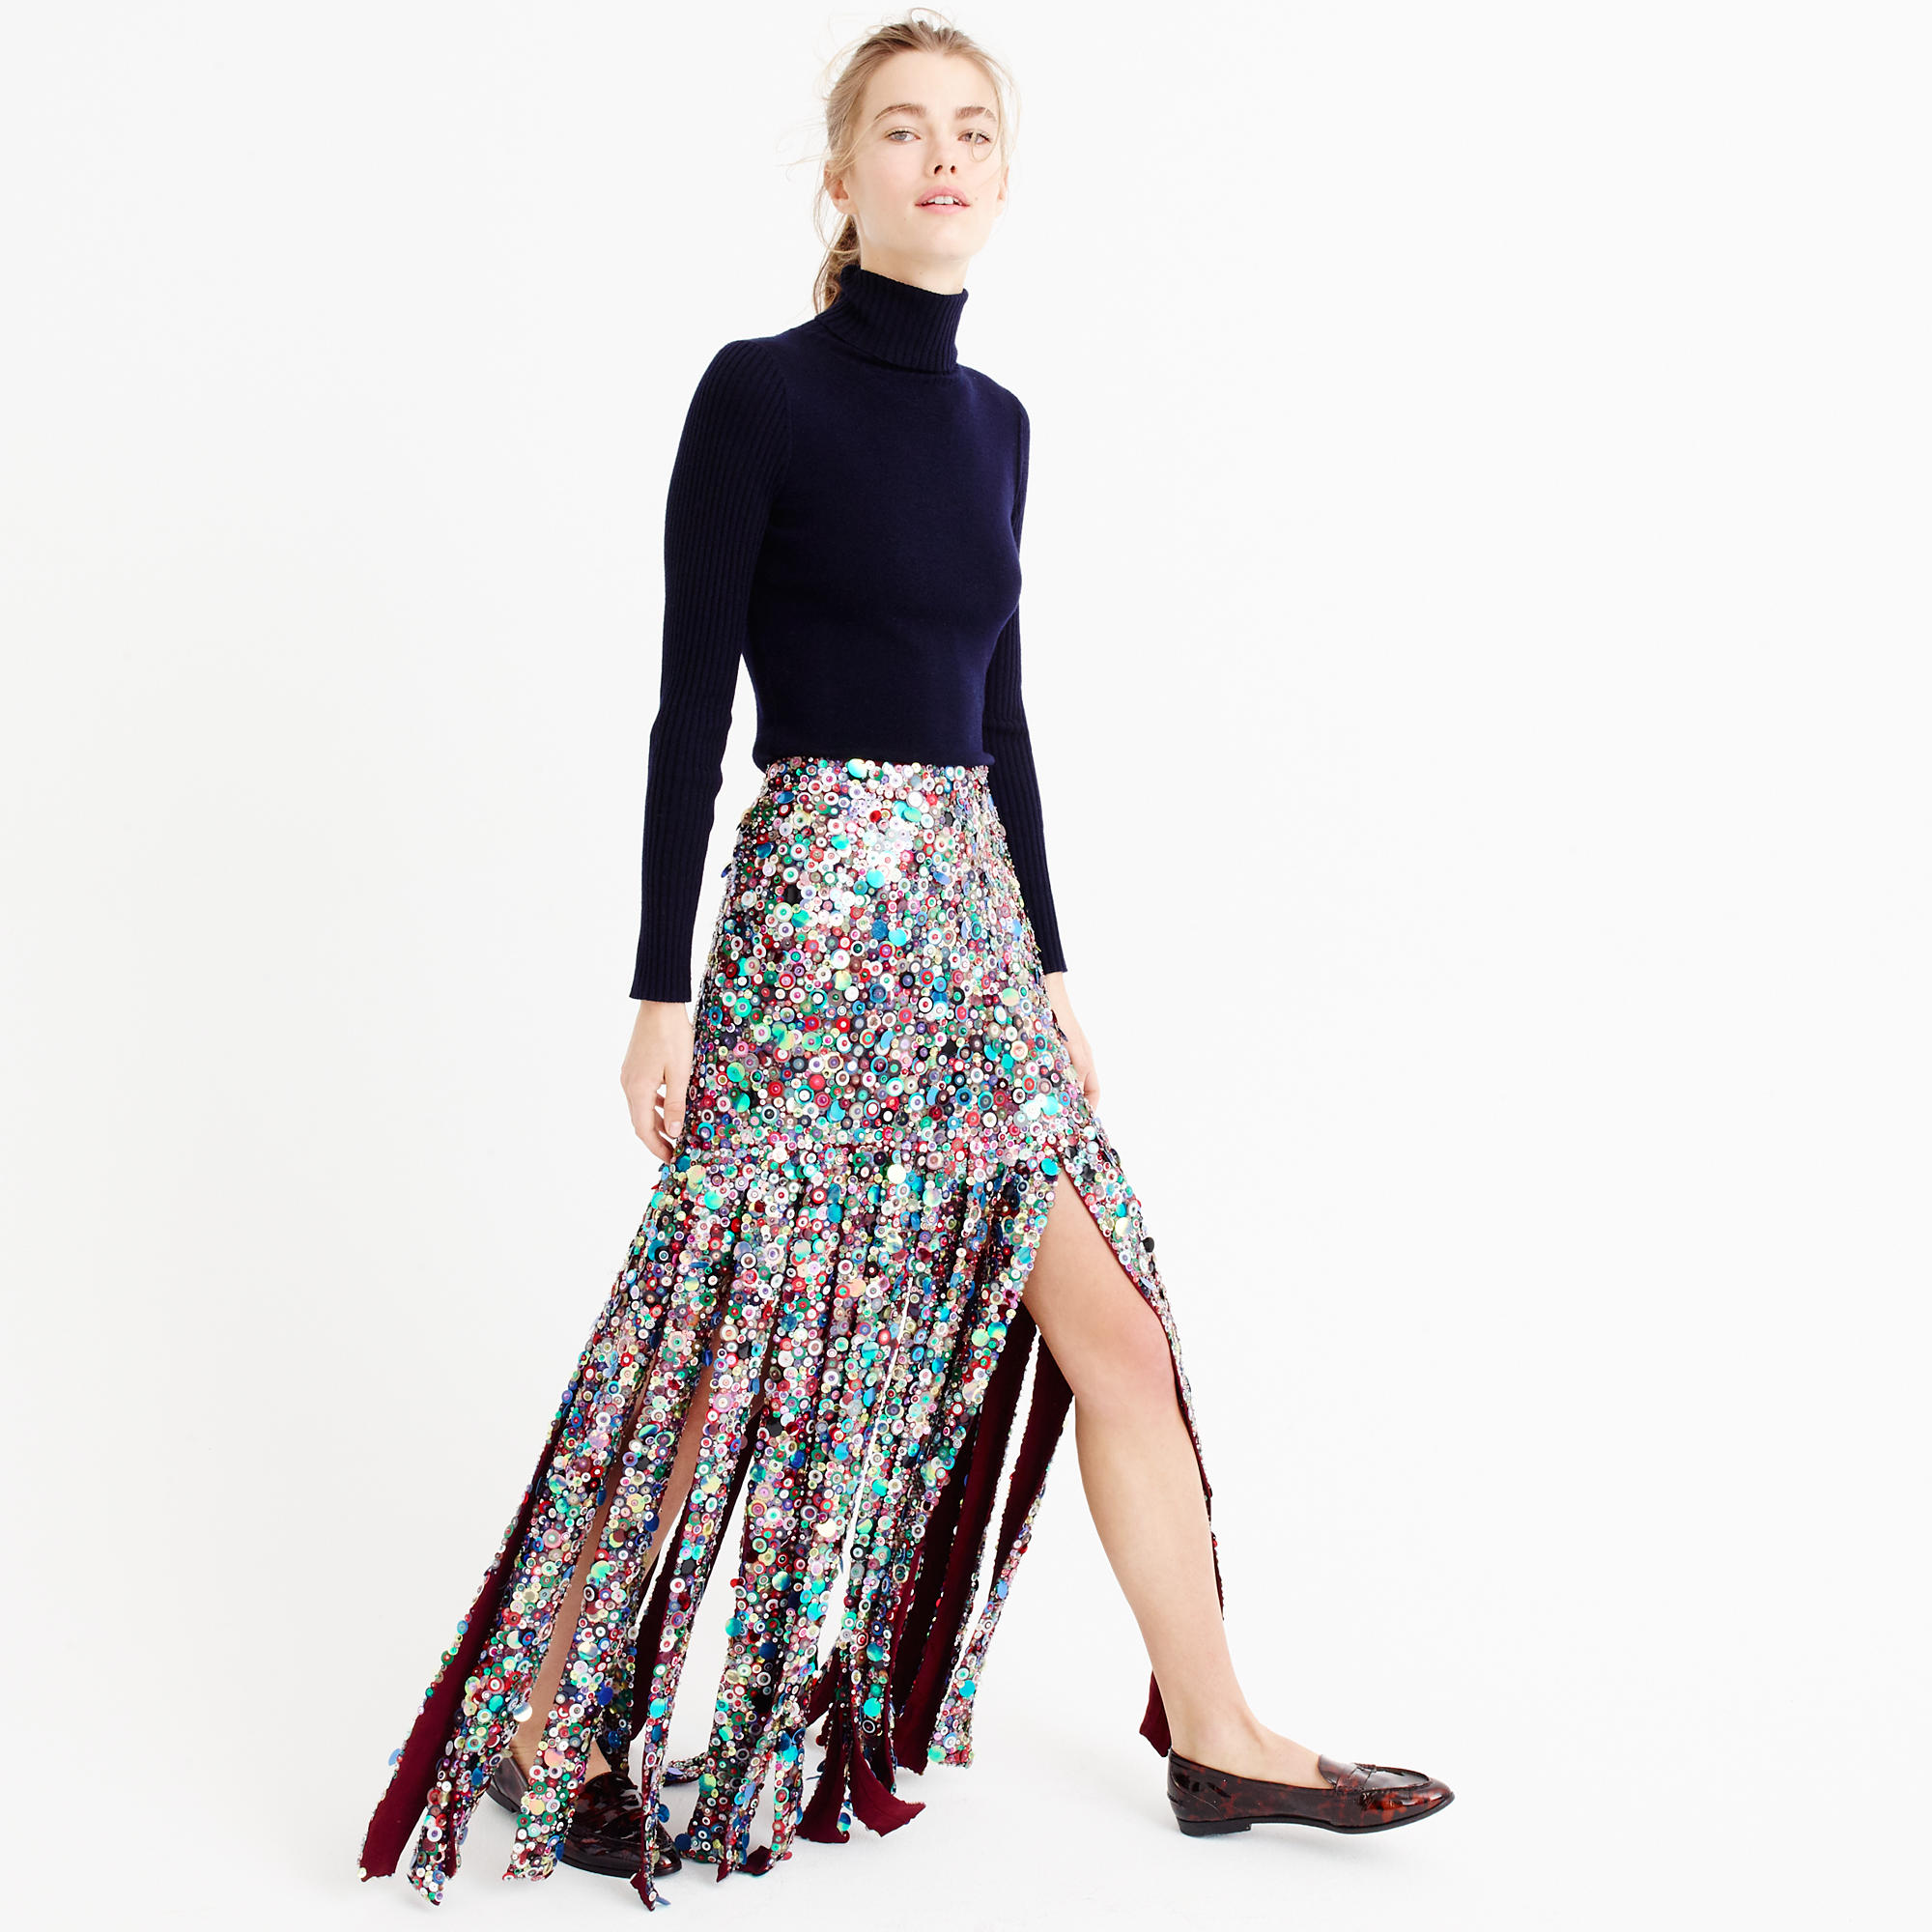 Collection Sequin Maxi Skirt : Women's Skirts | J.Crew